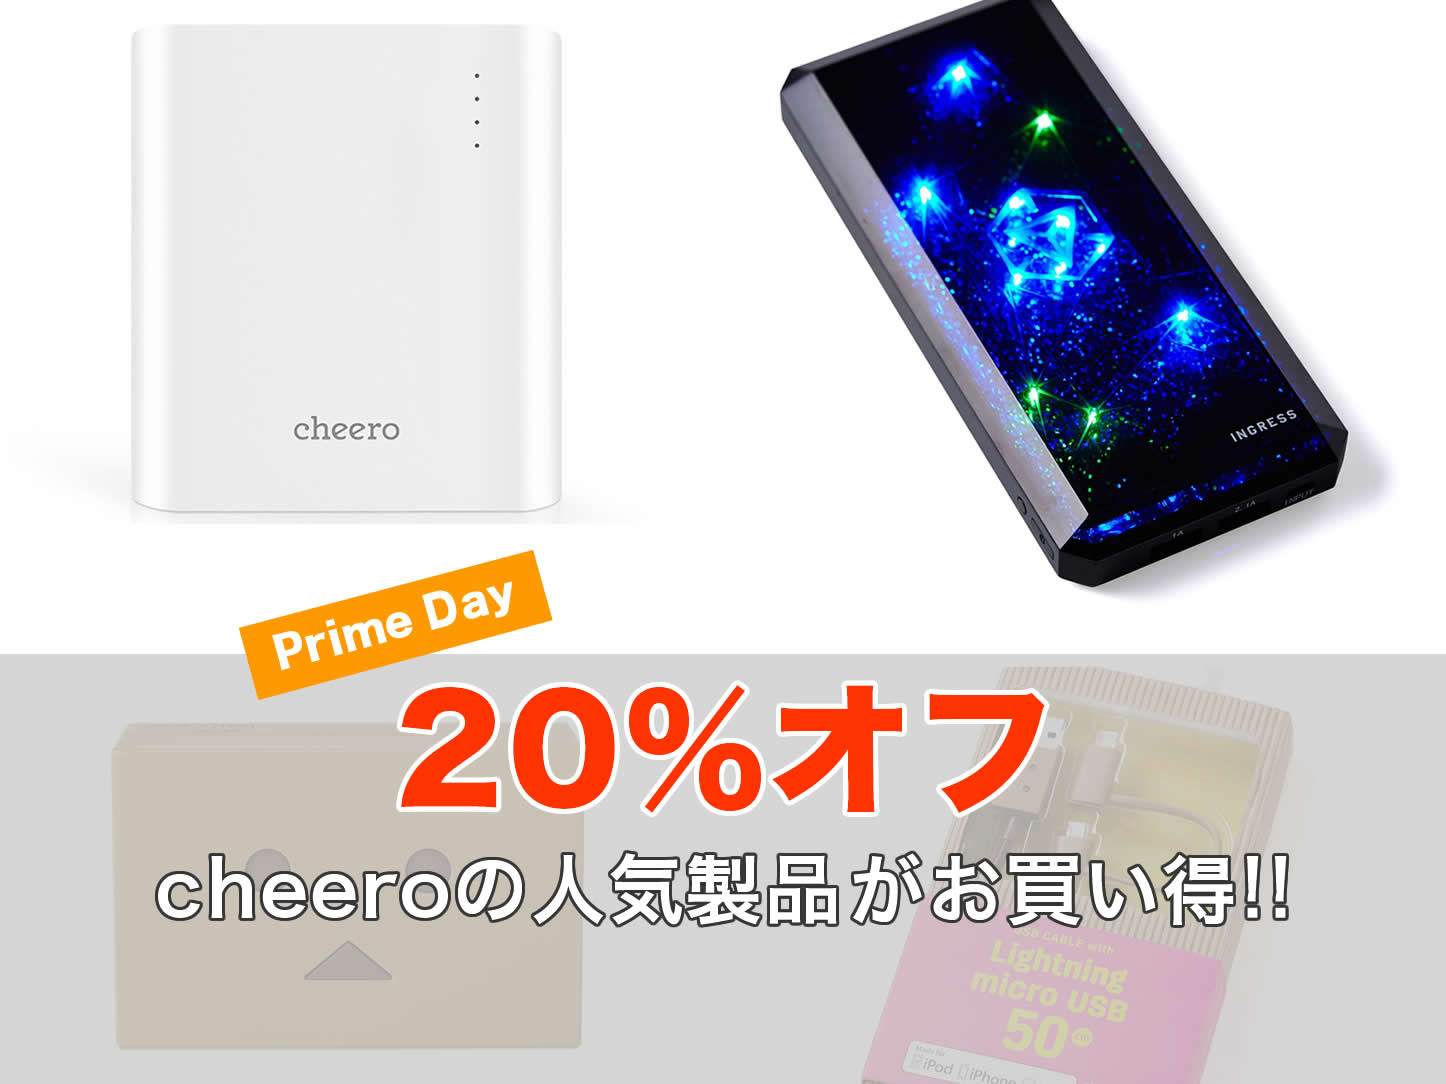 Cheero primeday